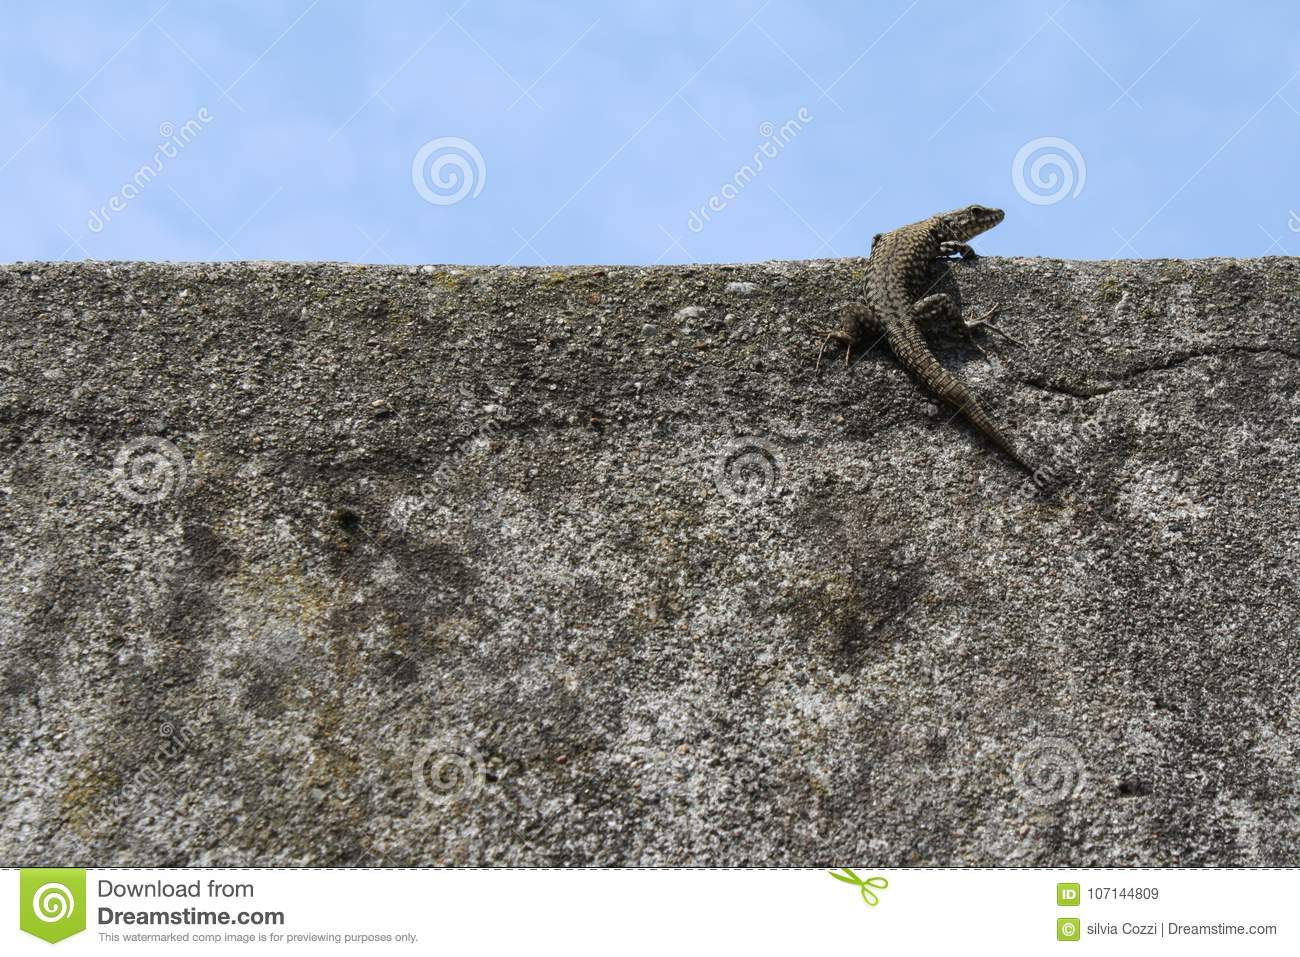 Lizard on top of a wall with blue sky background.